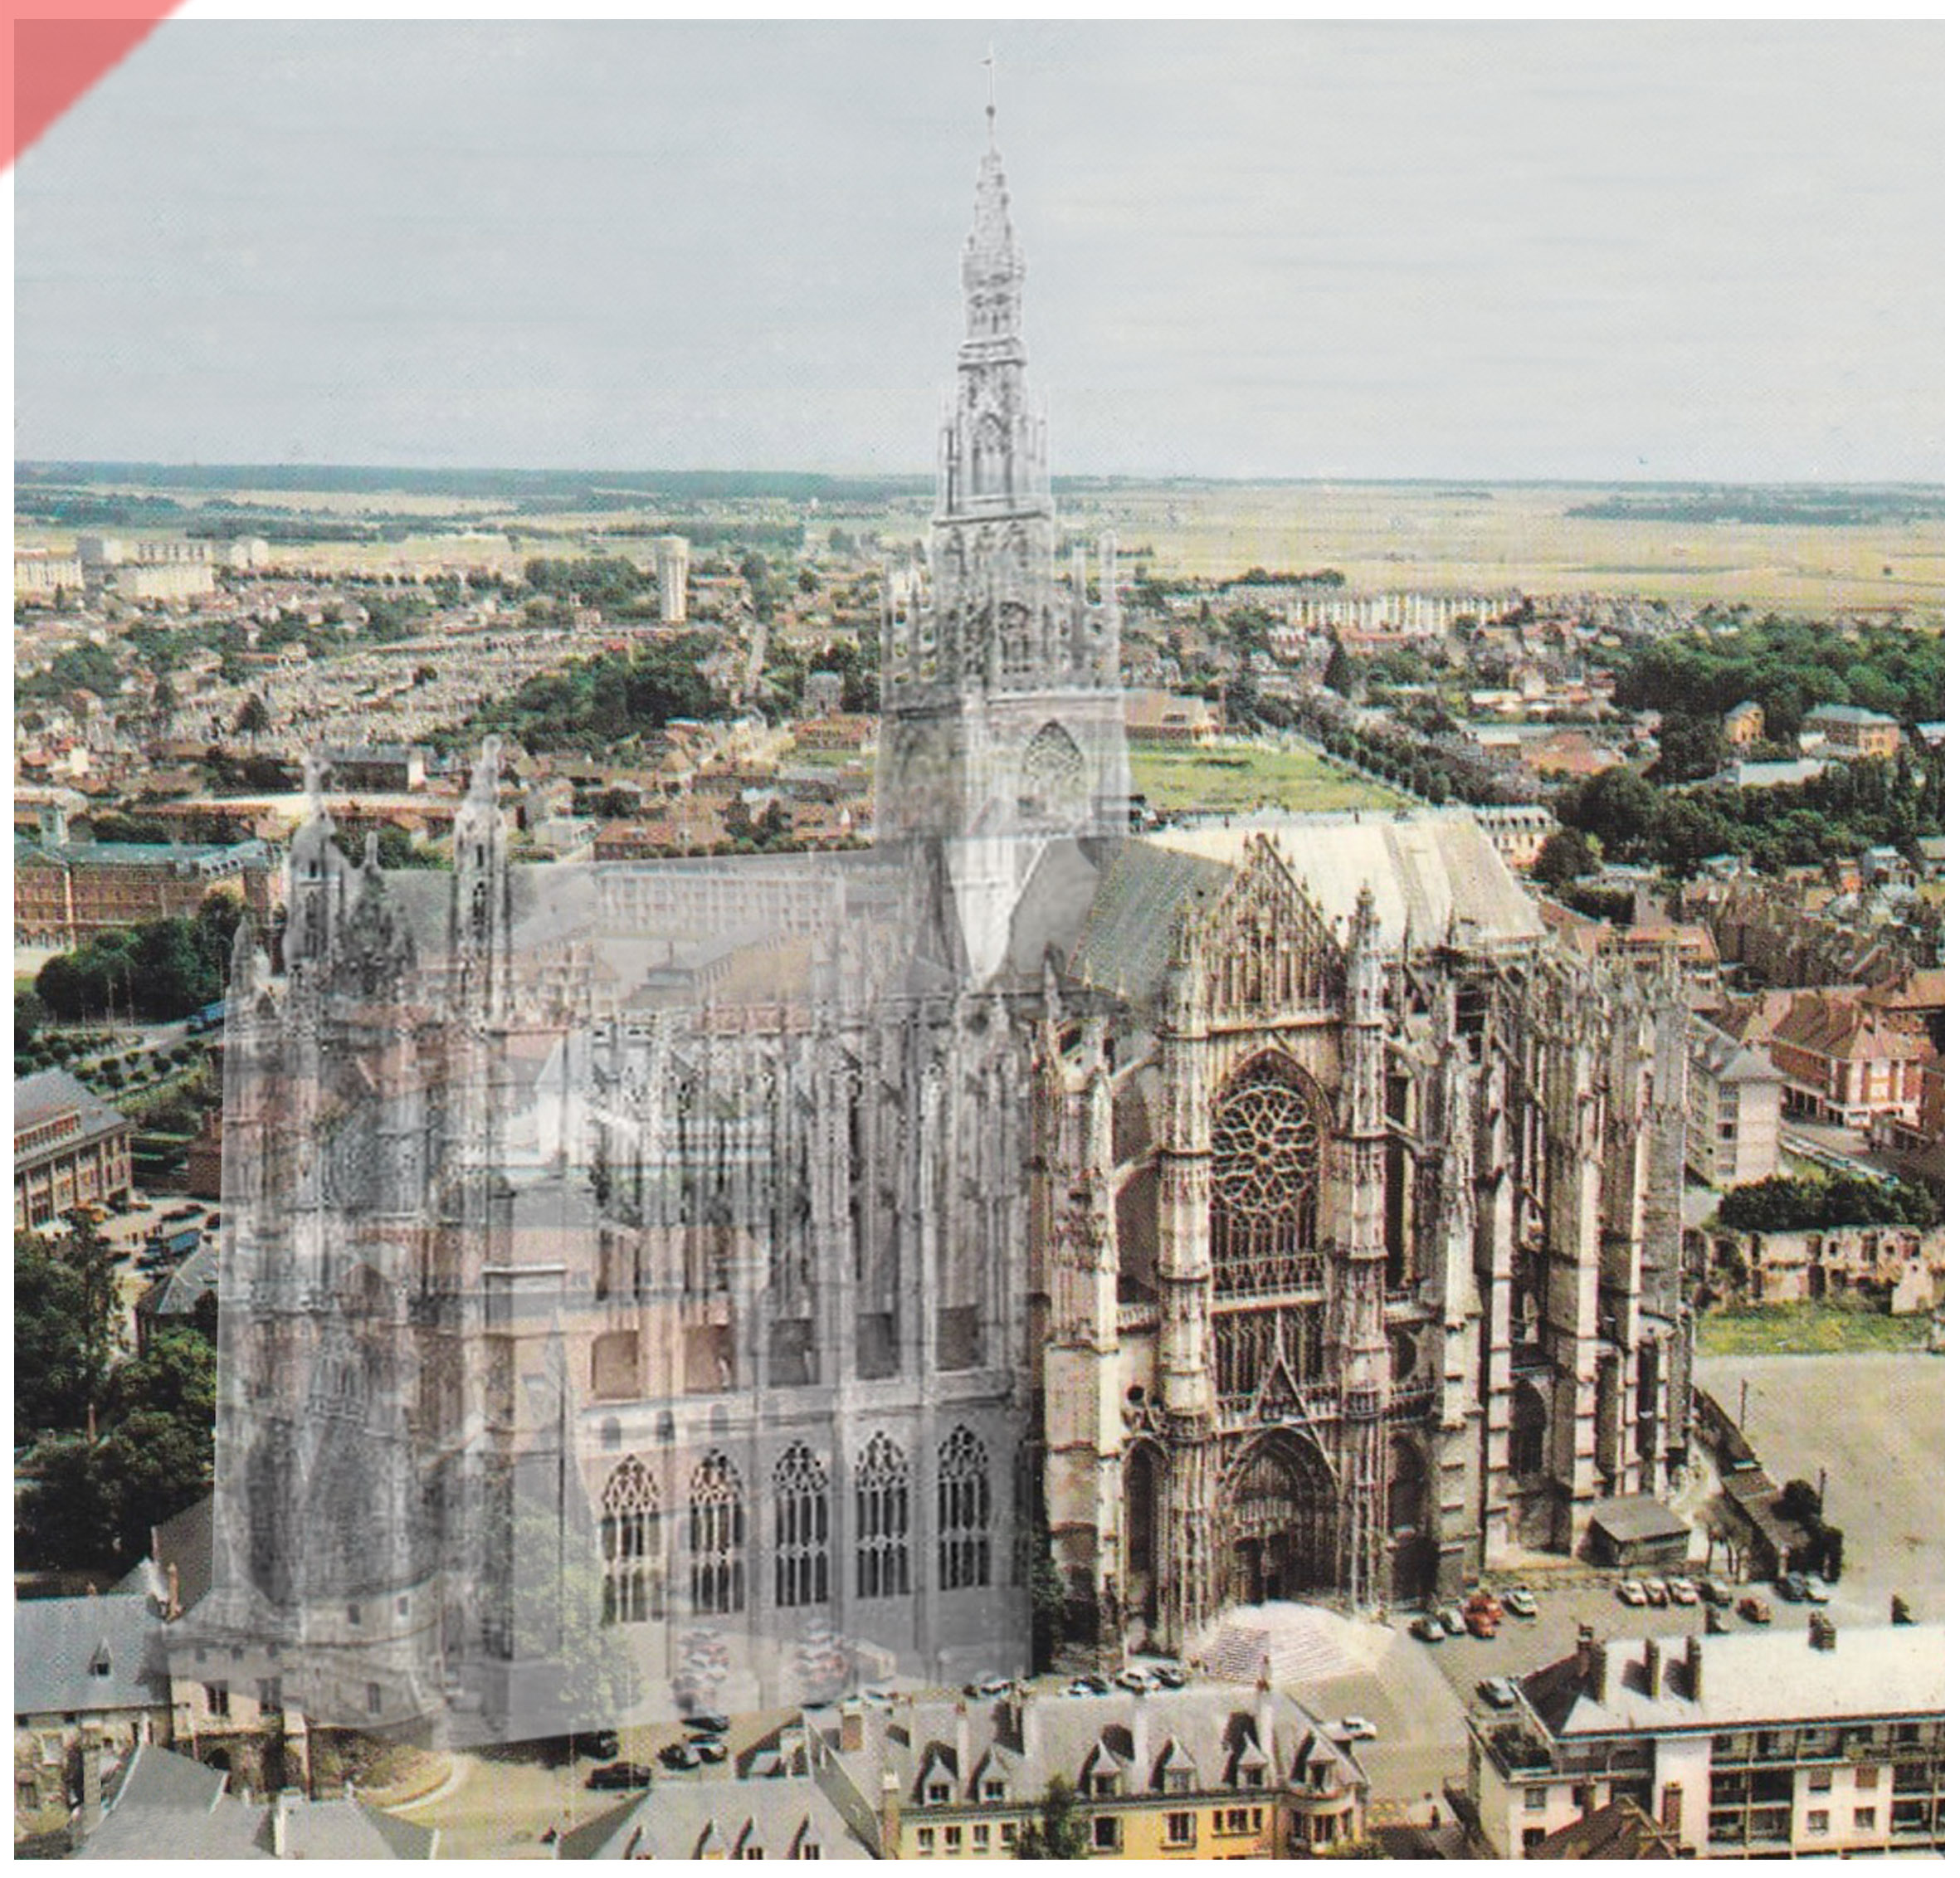 Cathédrale-Beauvais-vue-aerienne-façade-sud-façade-prévue-tour-1573-église-planifiée-Cathedrale-Beauvais-aerial-view-south-façade-geplante-façade-tower-1573-planned-kathedrale-church